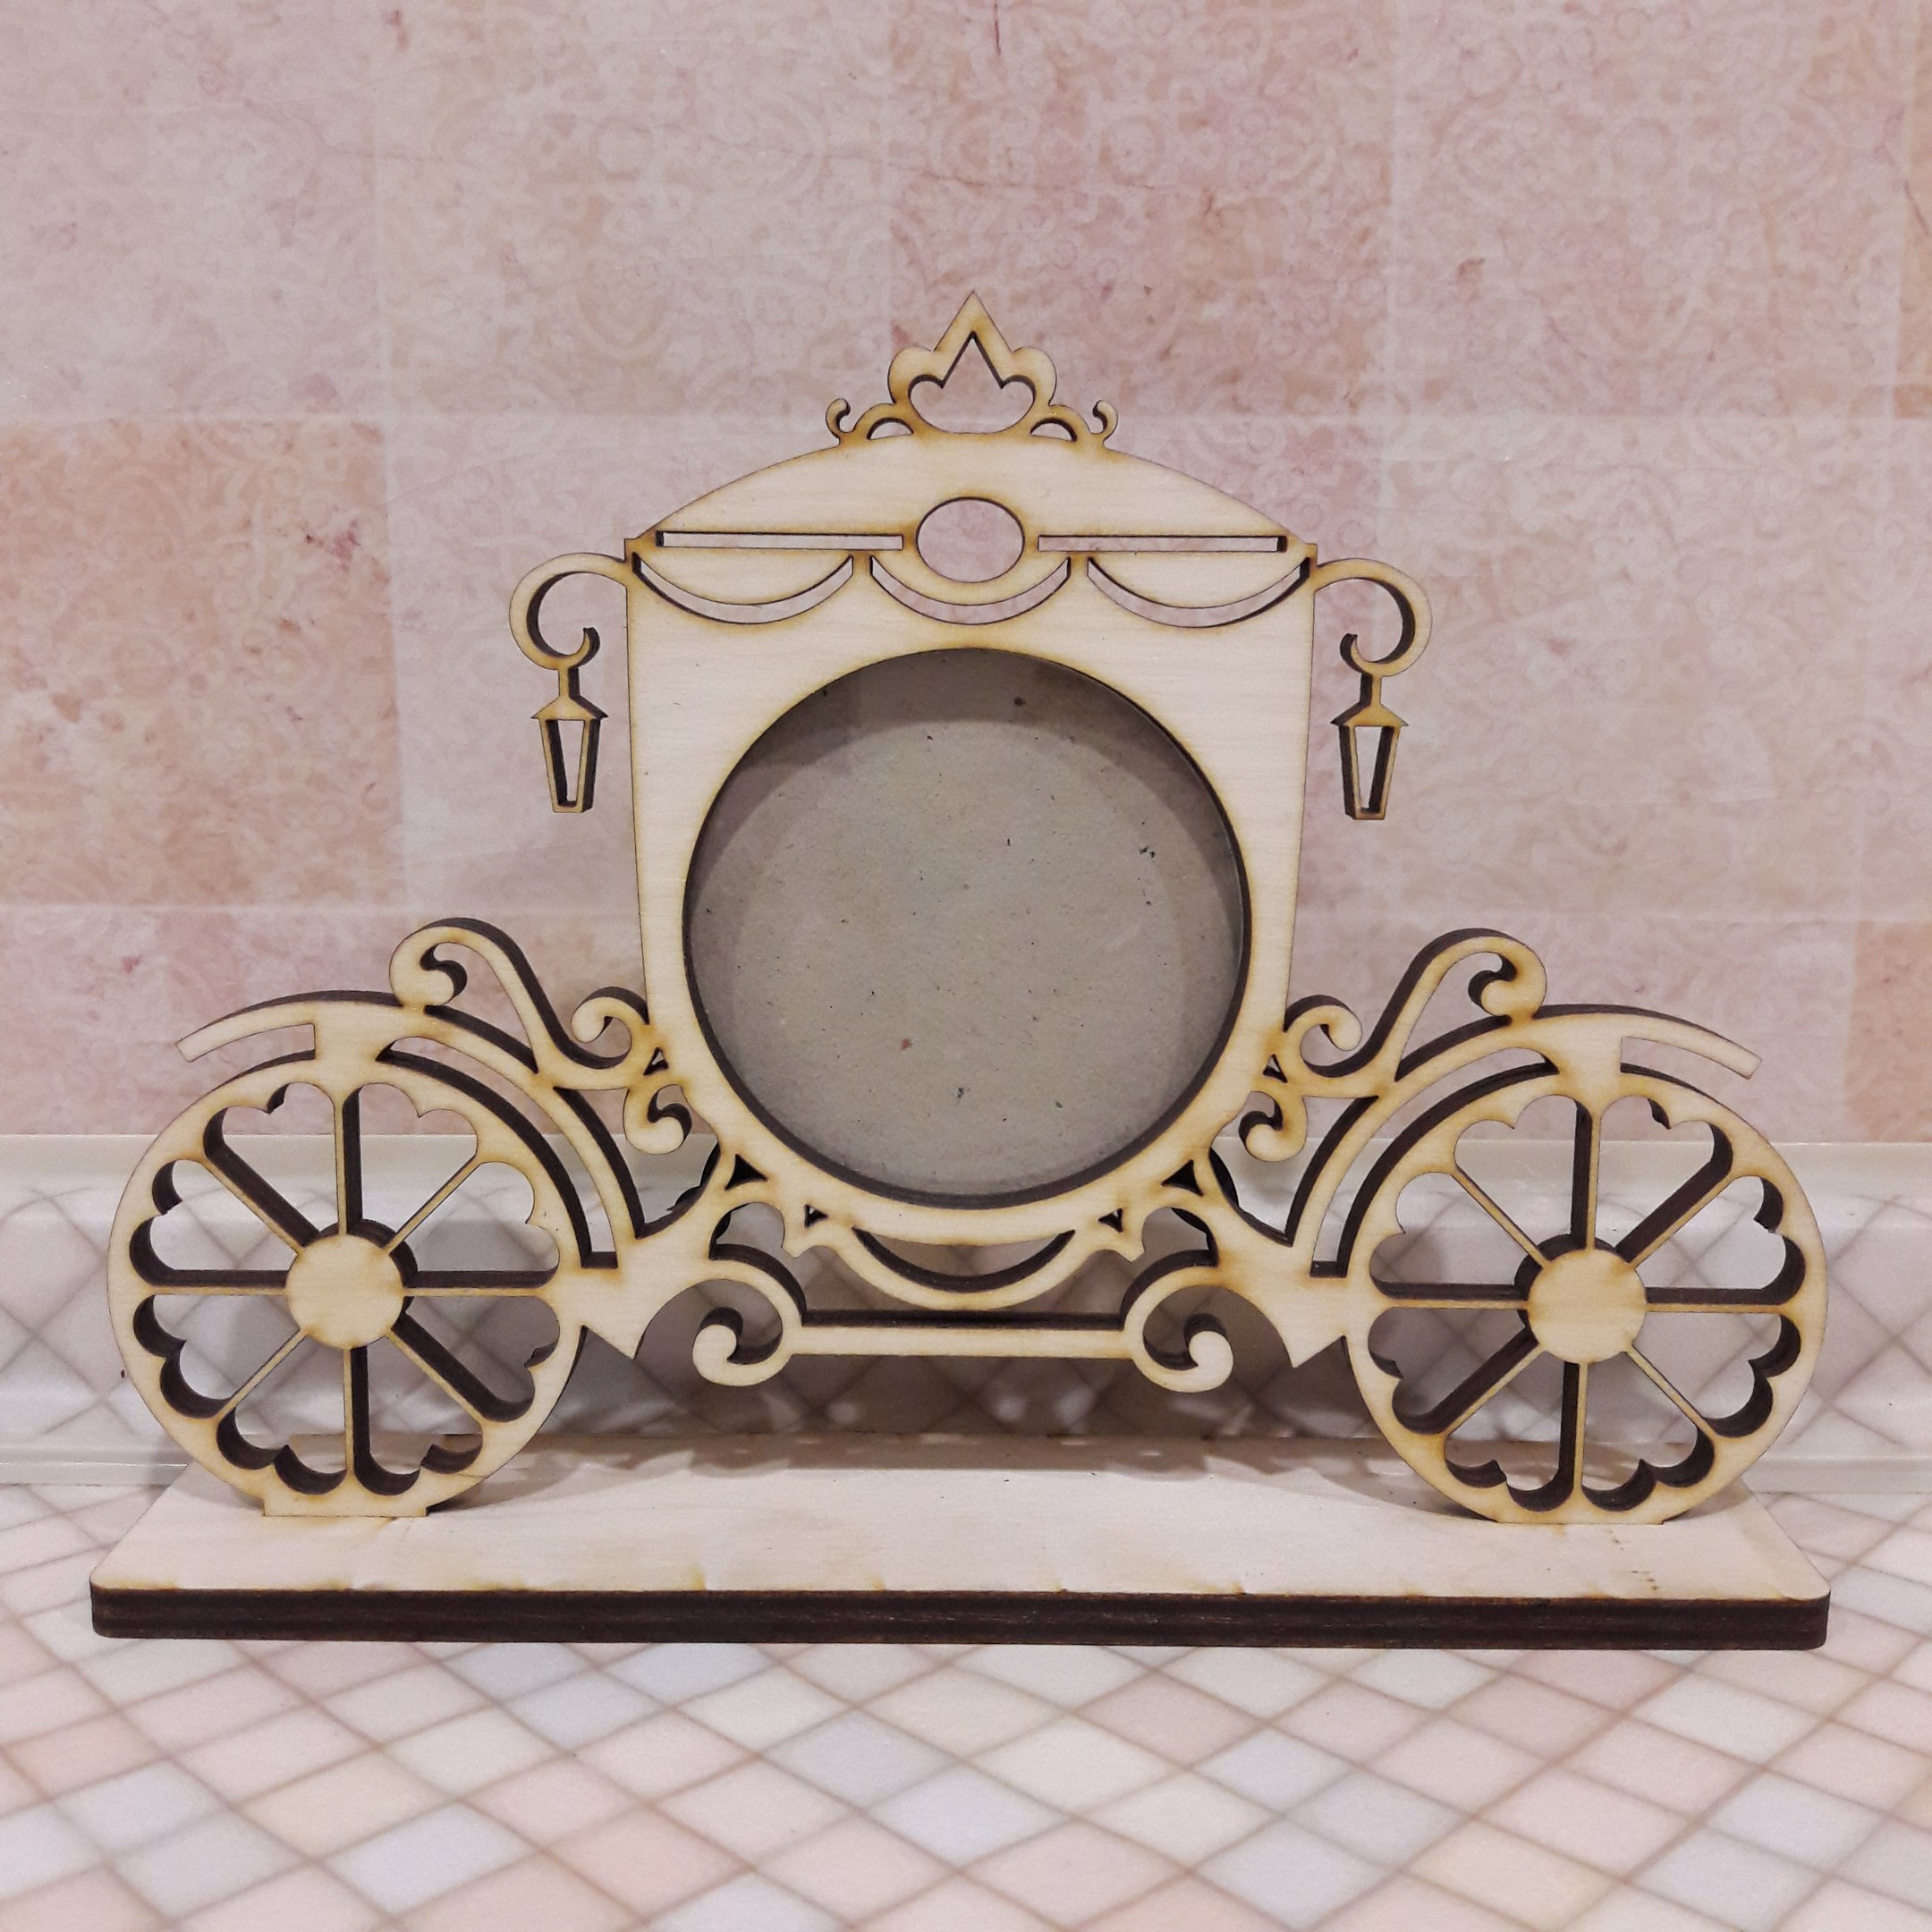 Laser Cut Candy Cart Patterned Photo Frame Free CDR Vectors Art